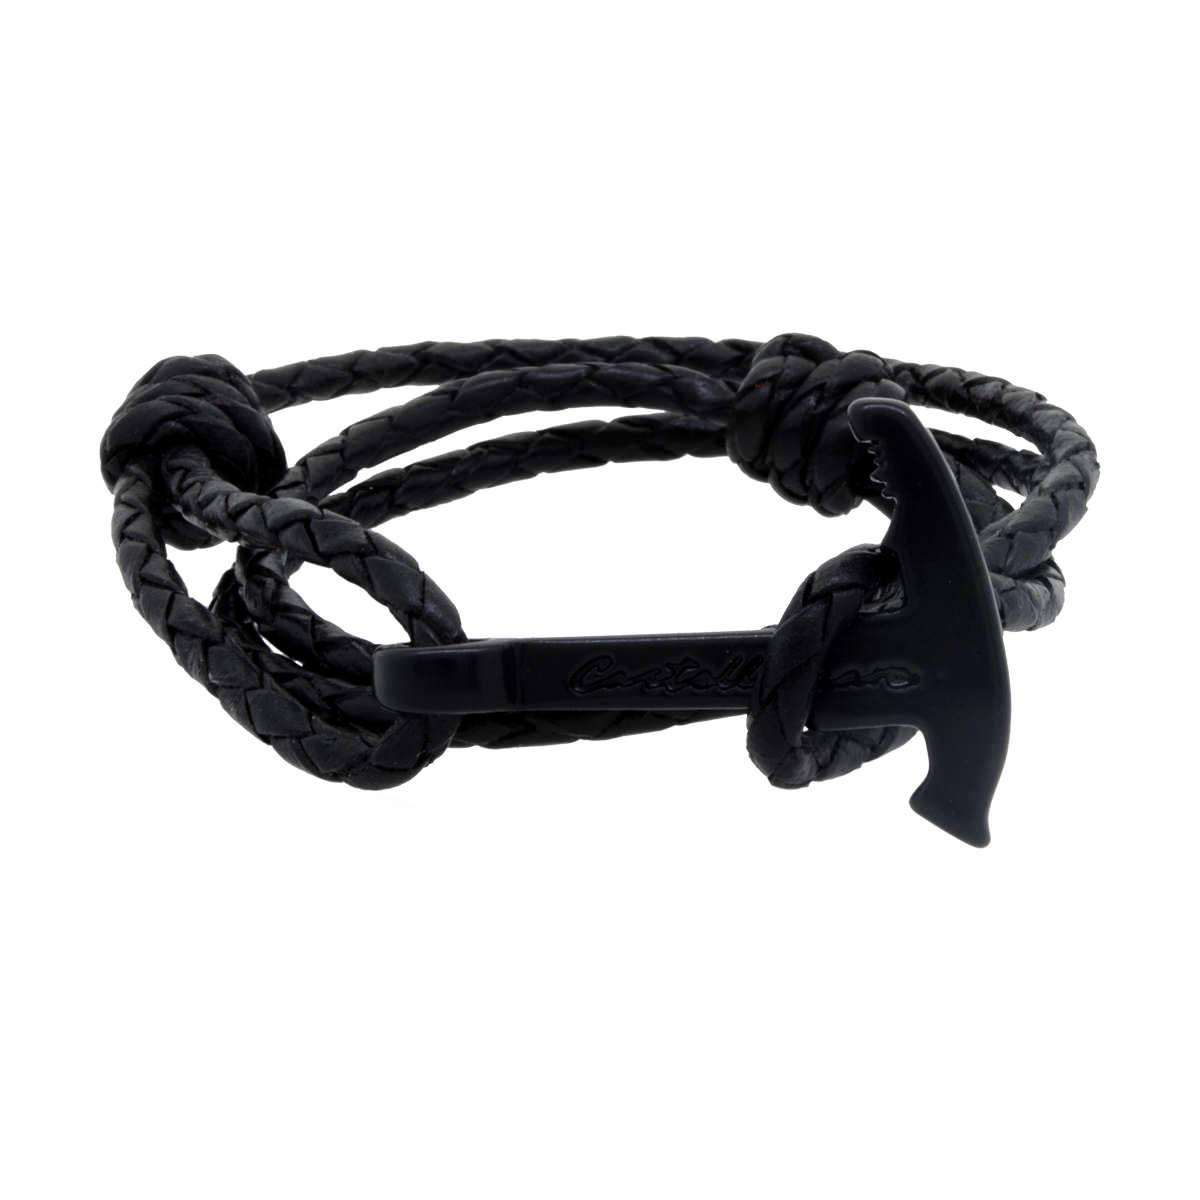 Pulsera - Gaeta Piolet Black Braided Leather BK